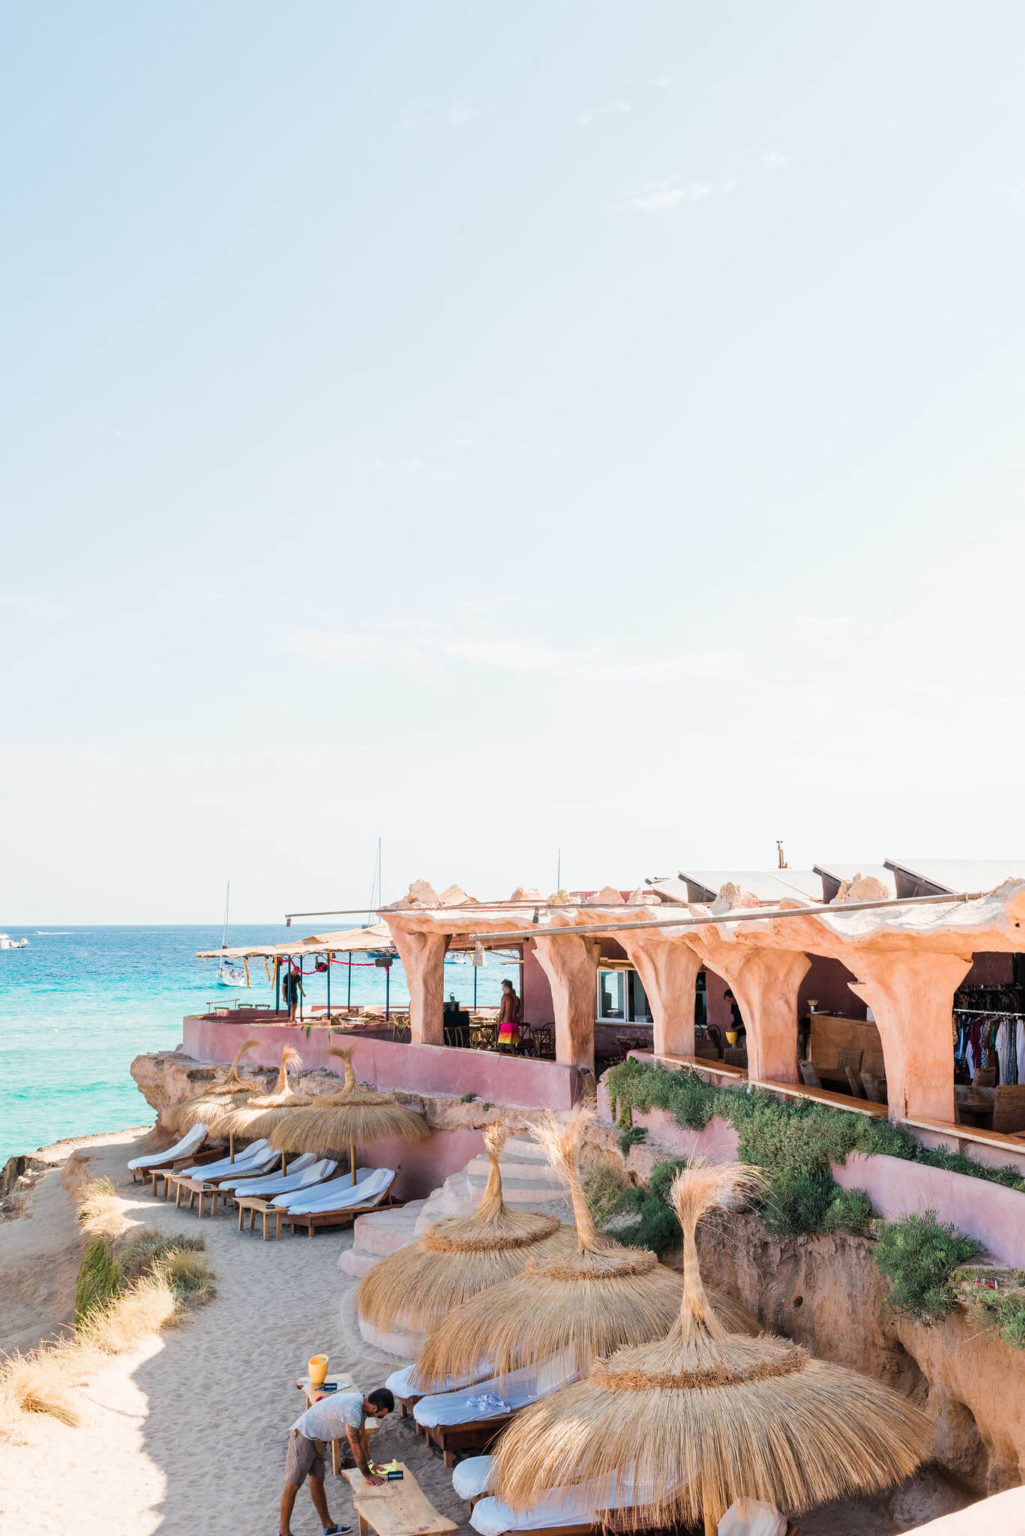 https://www.white-ibiza.com/wp-content/uploads/2020/03/ibiza-guide-areas-south-west-2020-13-1025x1536.jpg